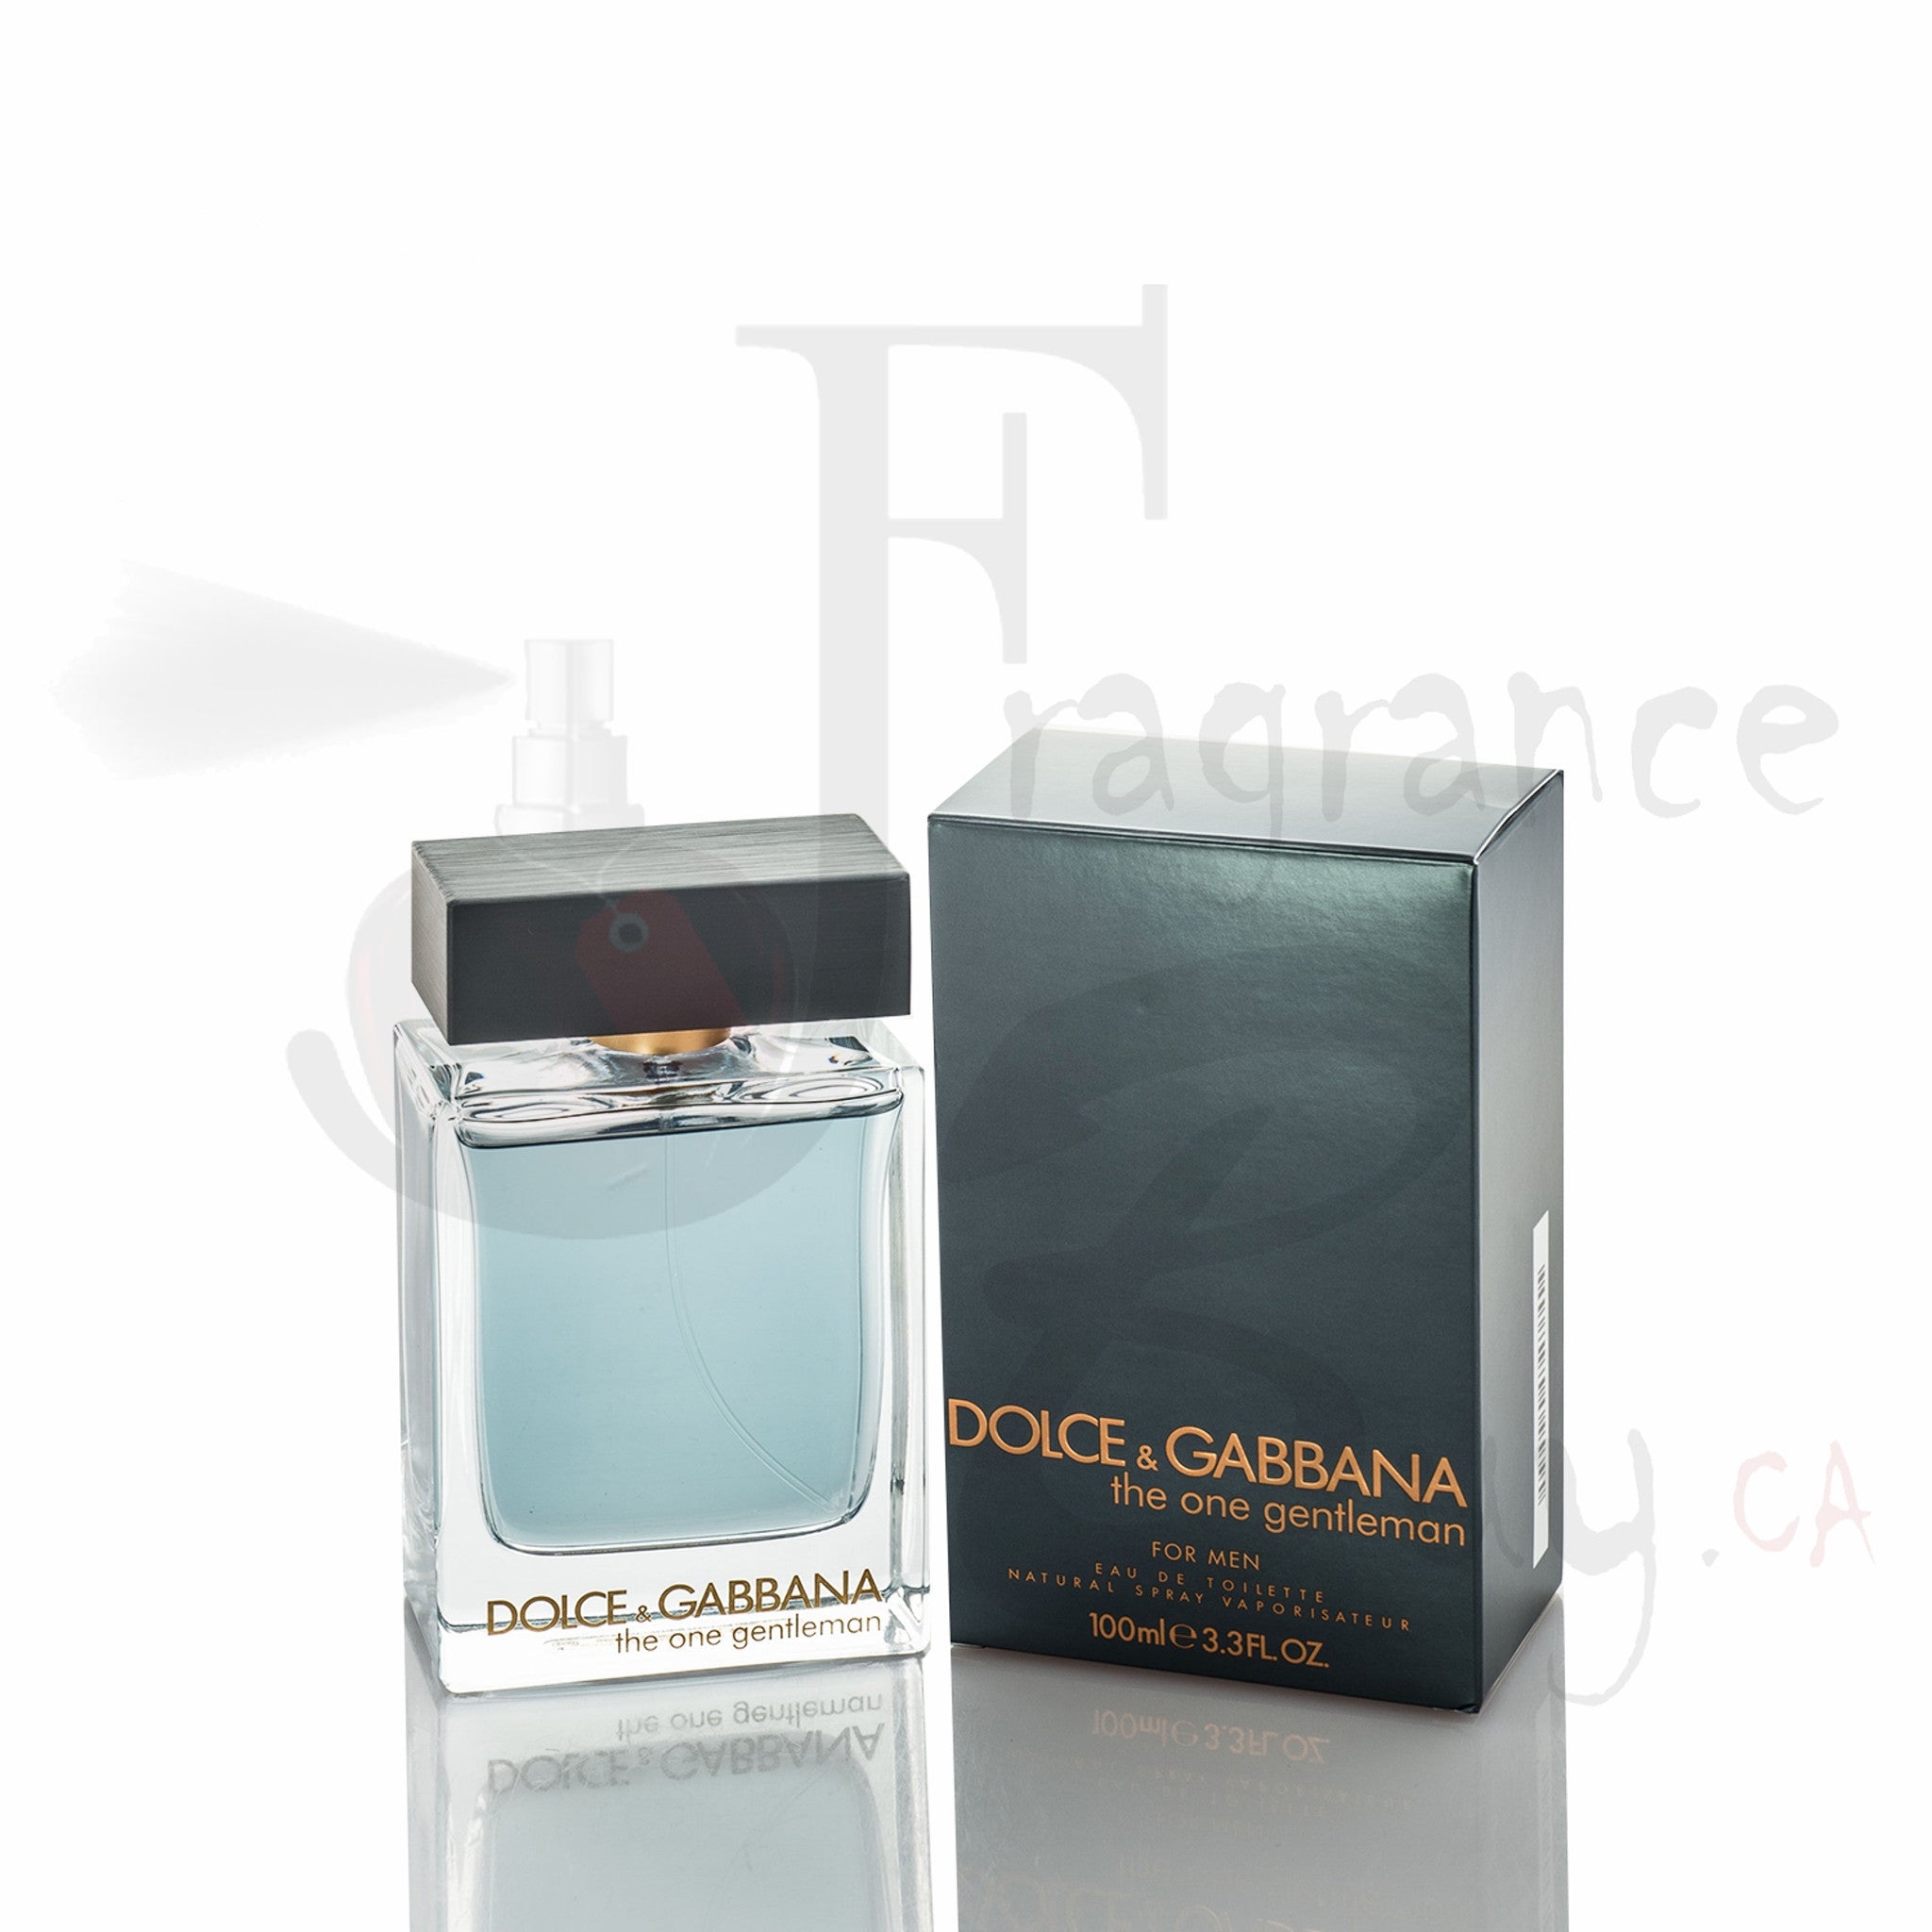 Dolce & Gabbana Gentleman The One For Man